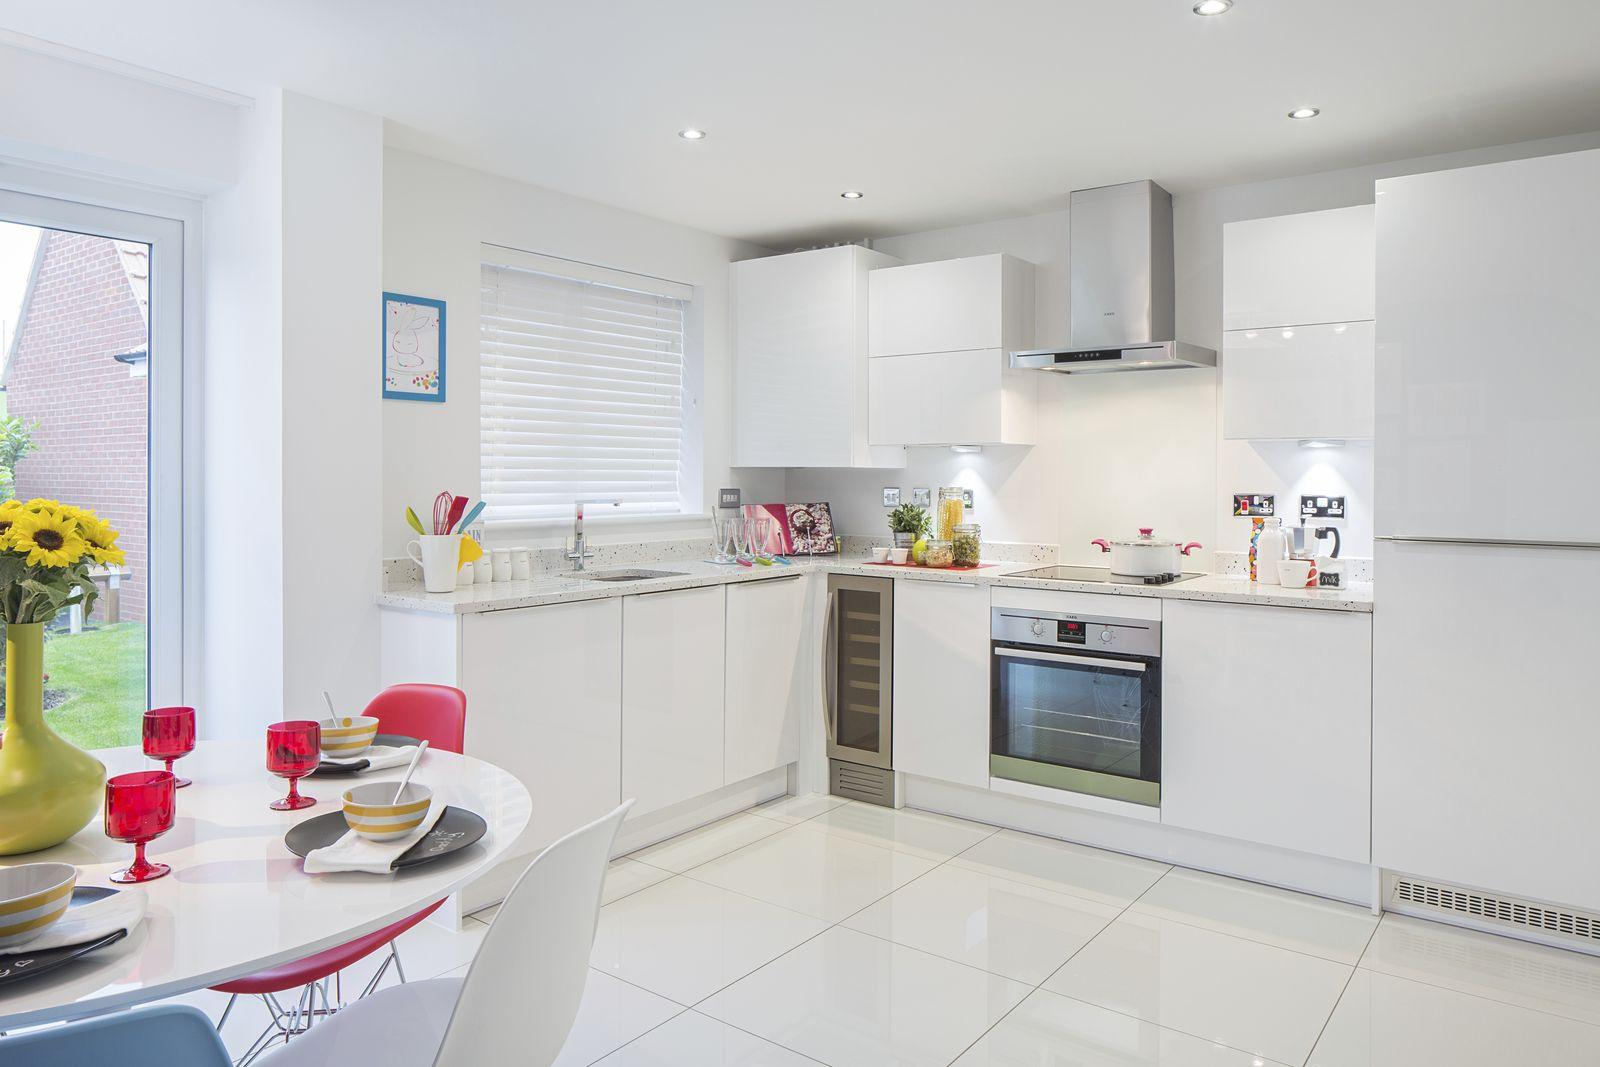 Typical Finchley fitted kitchen with family dining area